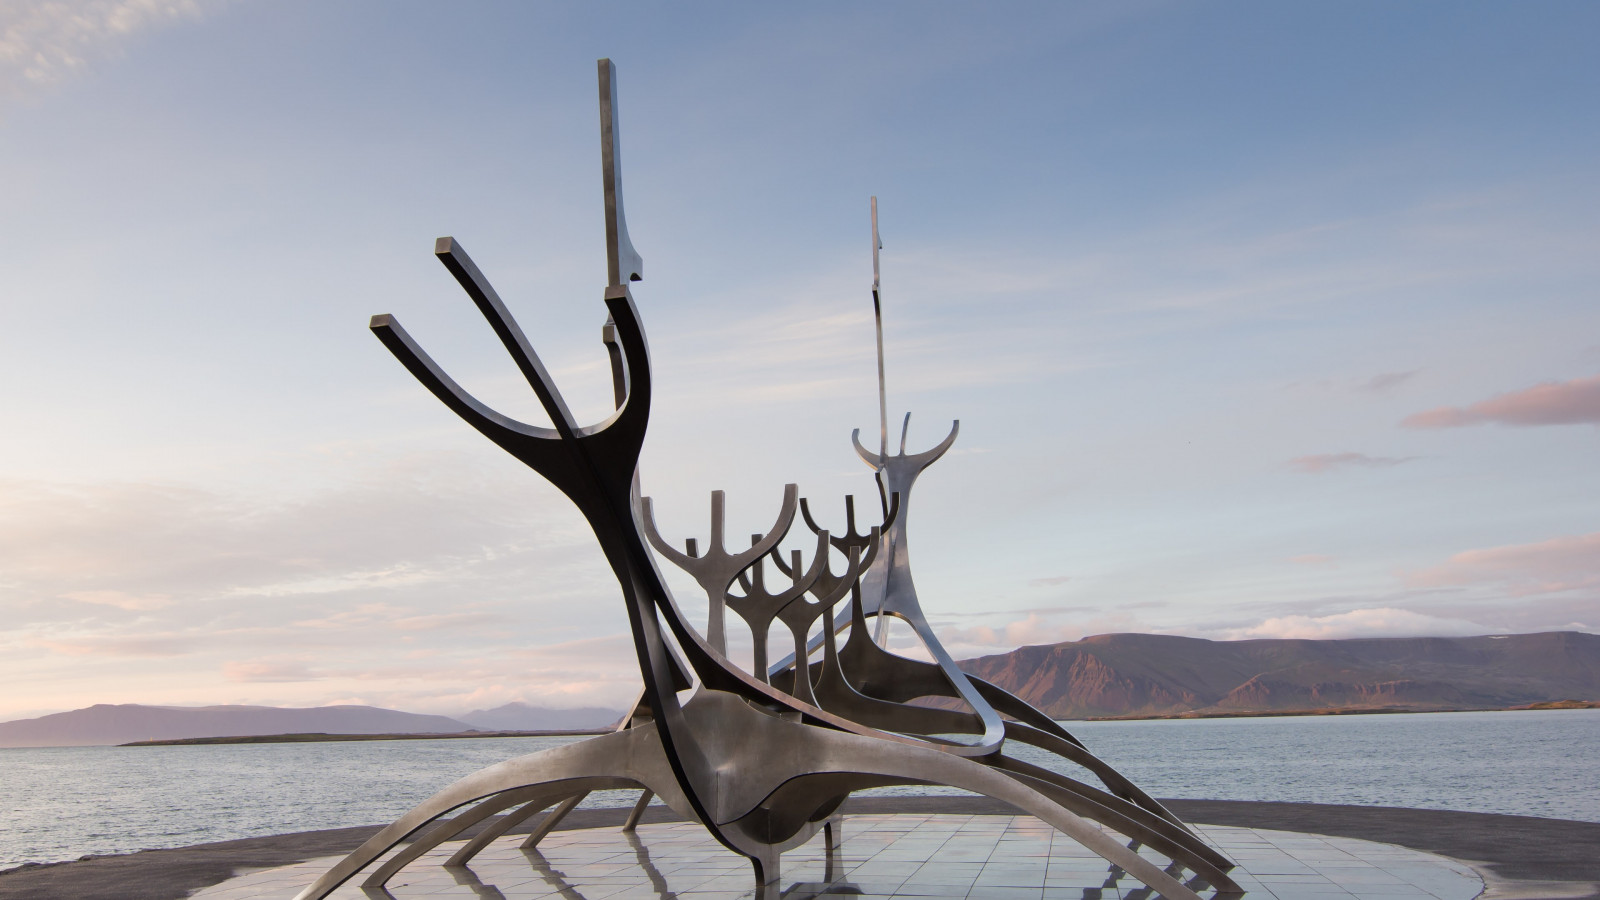 The Sun Voyager from Reykjavik, Iceland | 1600x900 wallpaper